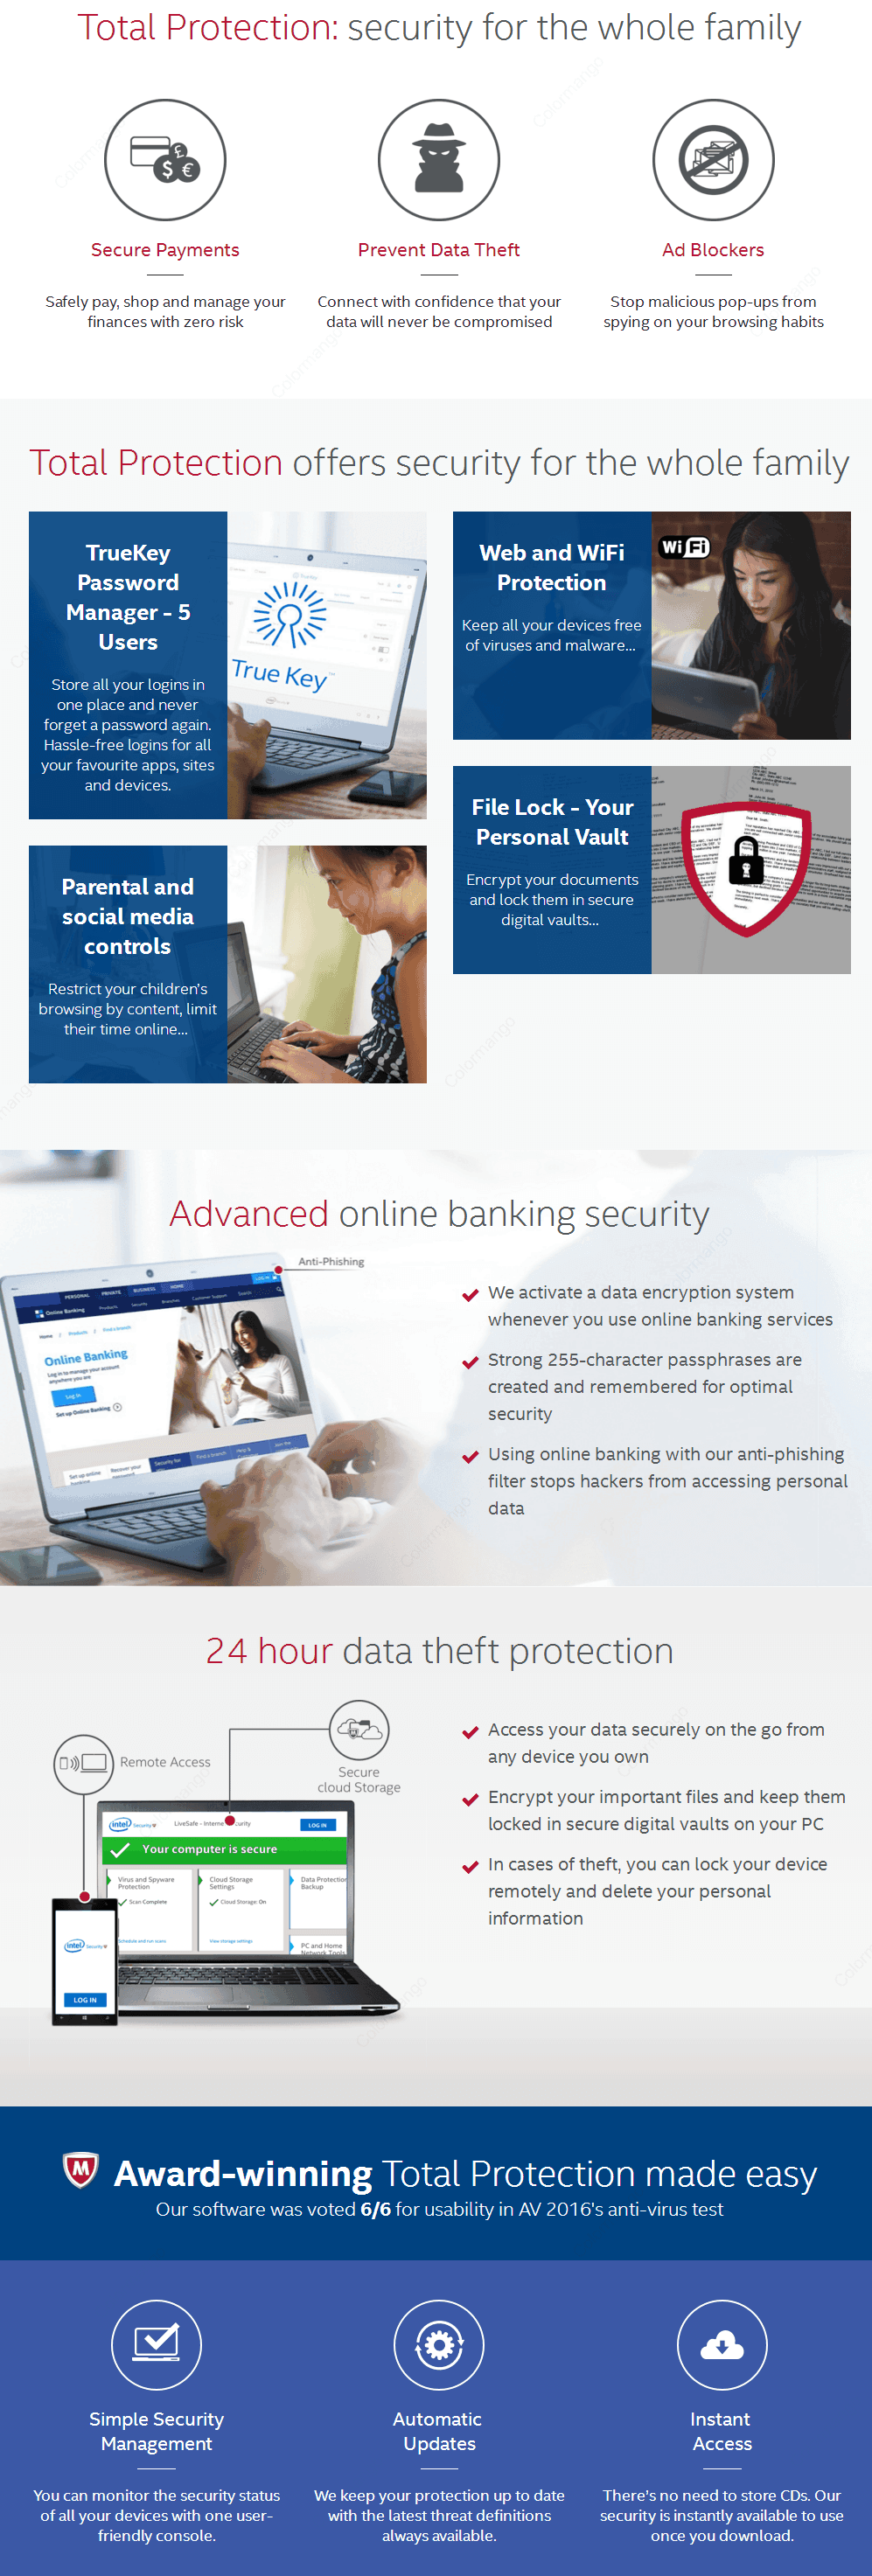 McAfee Total Protection key Features